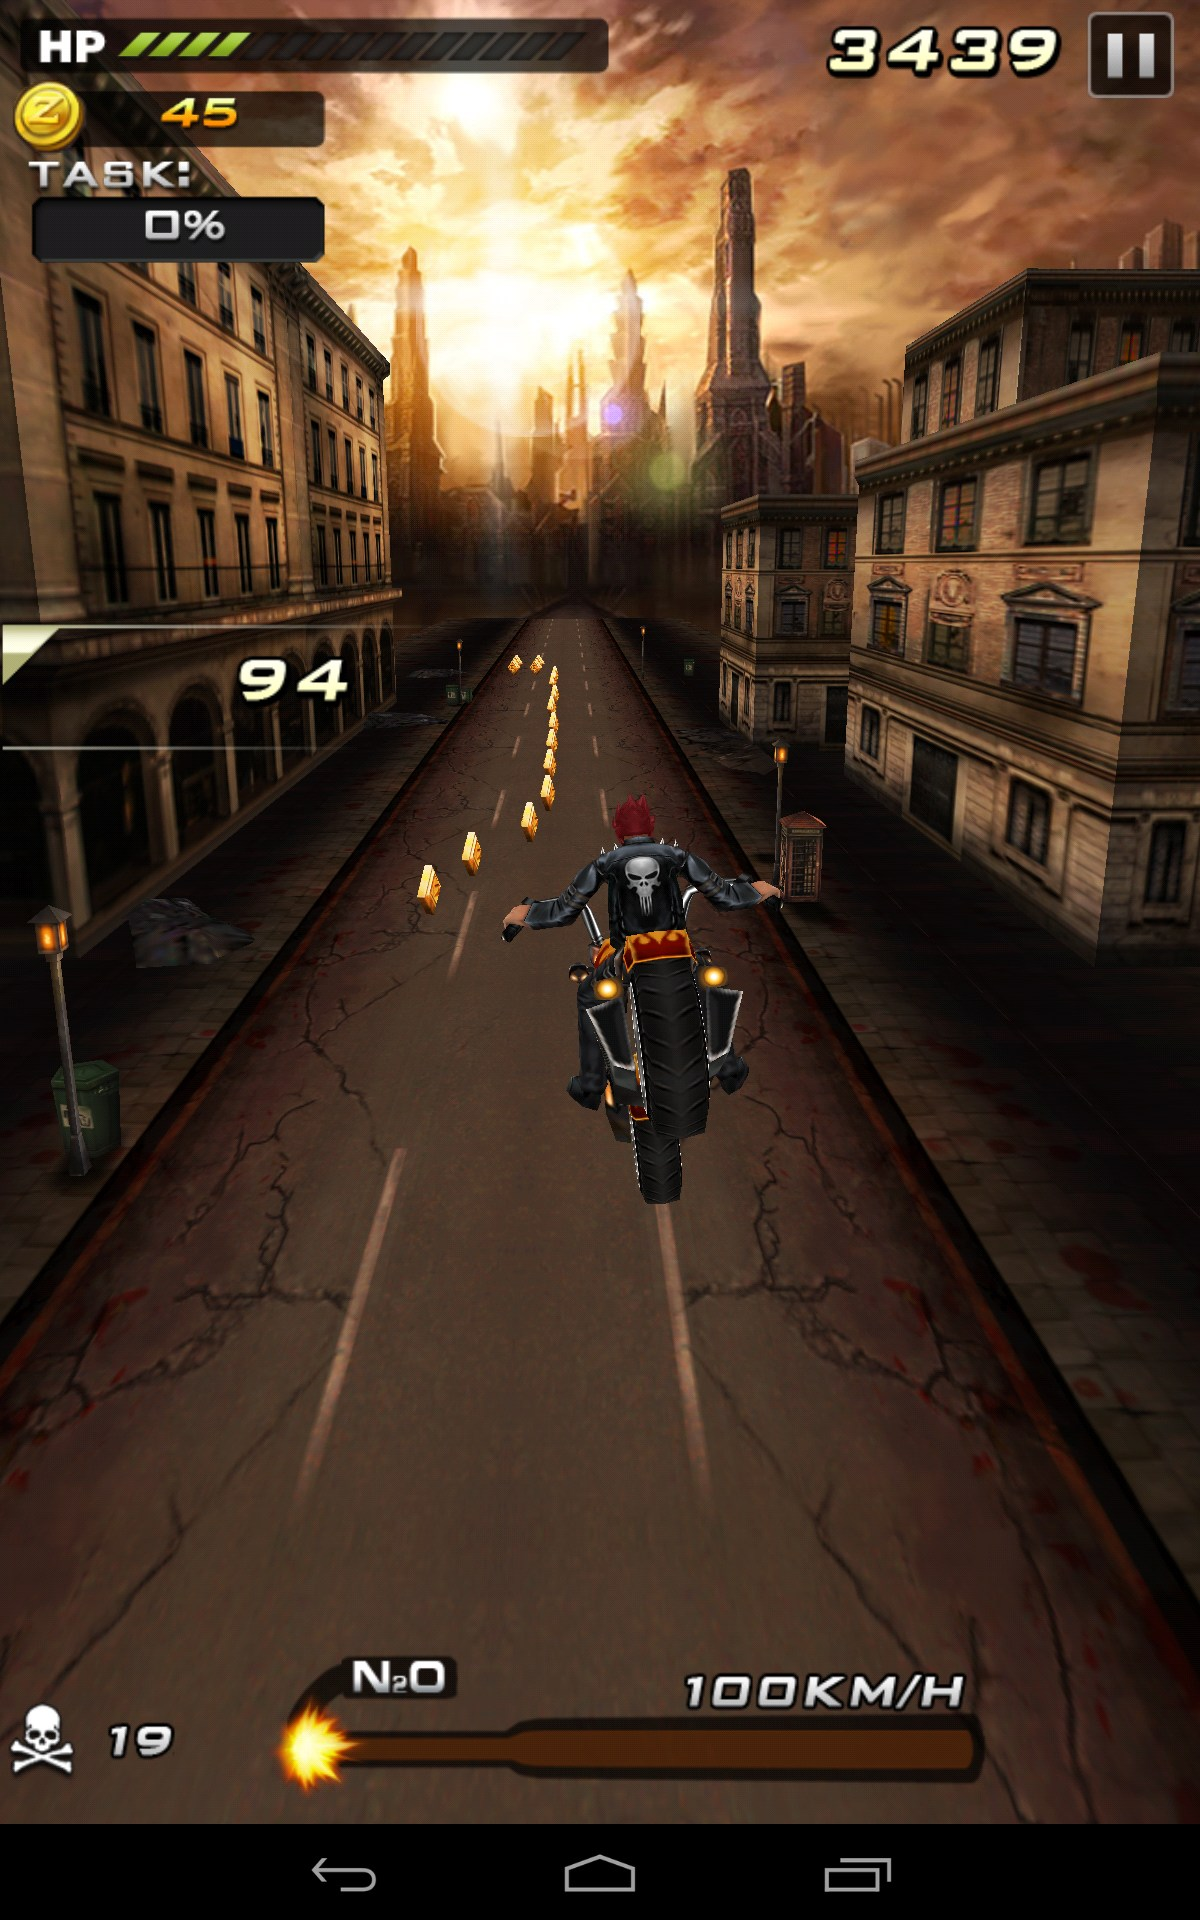 Death Moto 2 Games Free Download For PC Windows 7/8//10/XP